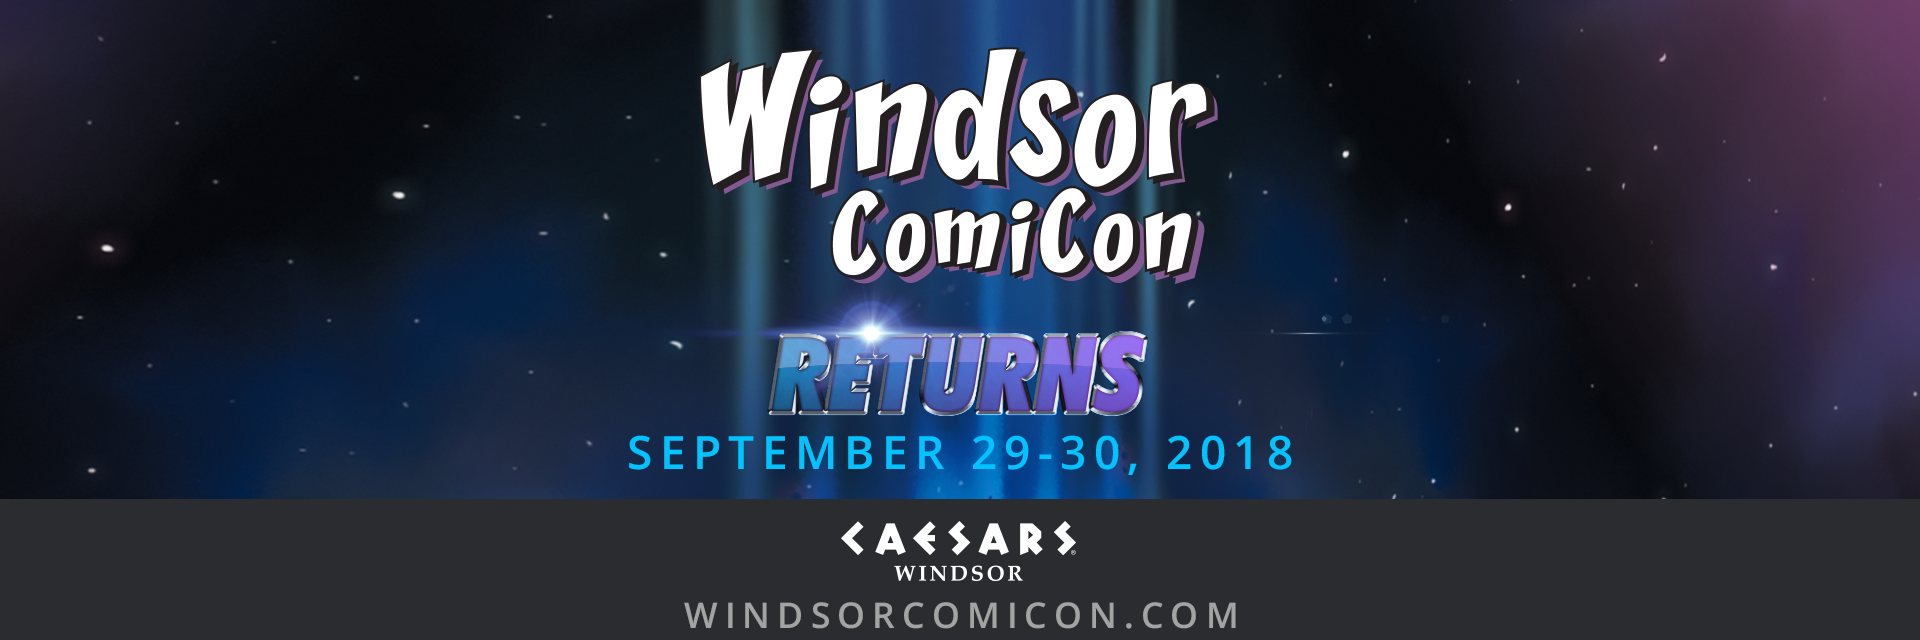 WINDSOR COMICON 2018 ANNOUNCED FOR SEPTEMBER 29-30